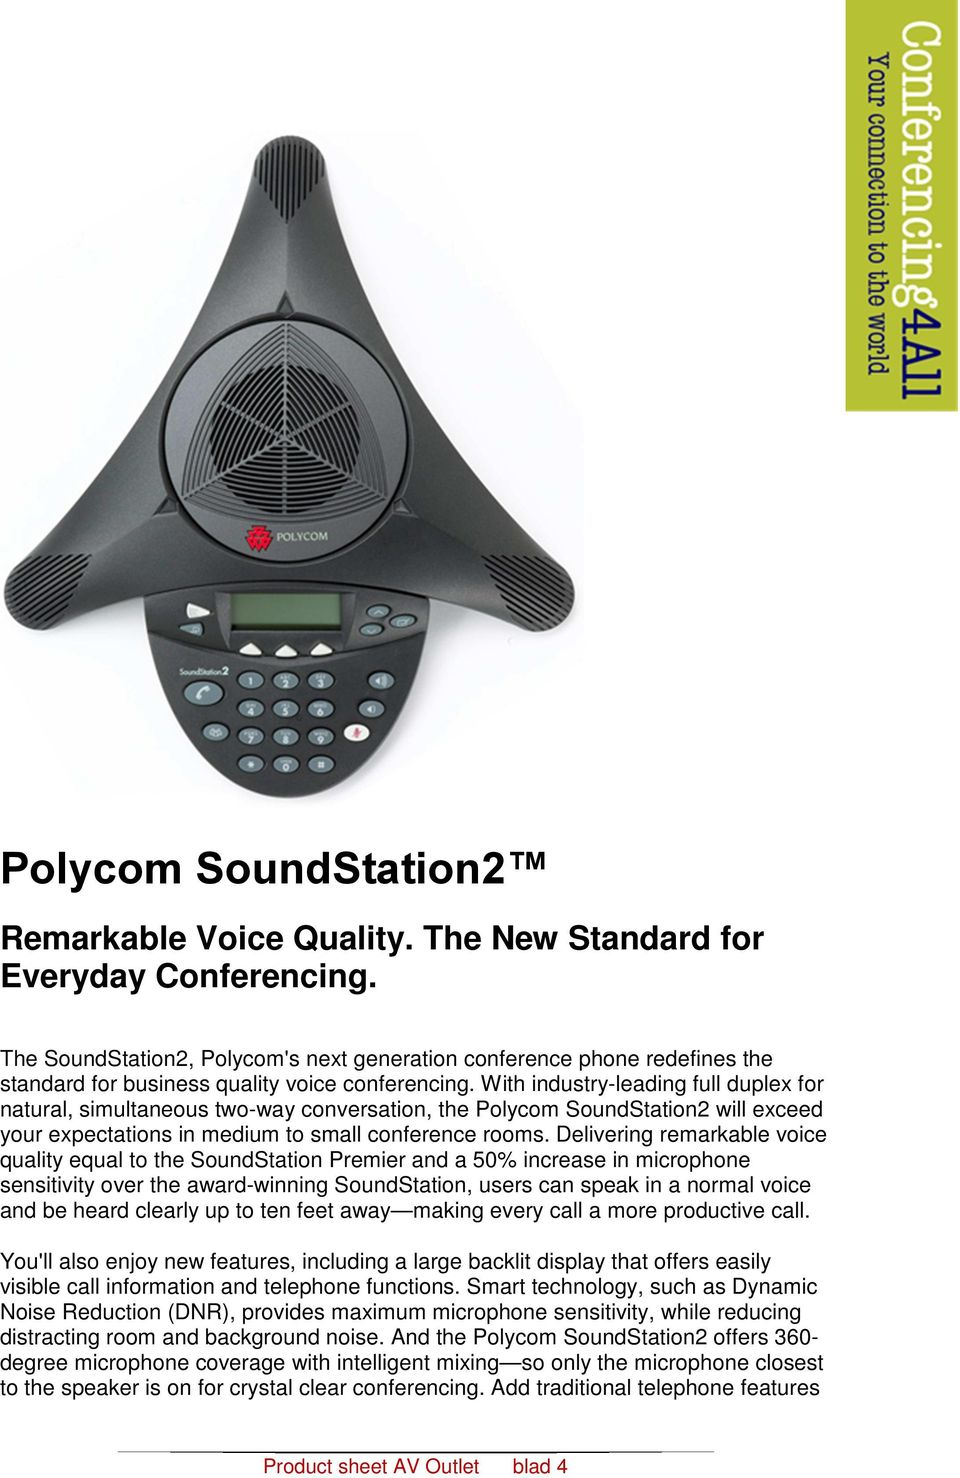 With industry-leading full duplex for natural, simultaneous two-way conversation, the Polycom SoundStation2 will exceed your expectations in medium to small conference rooms.